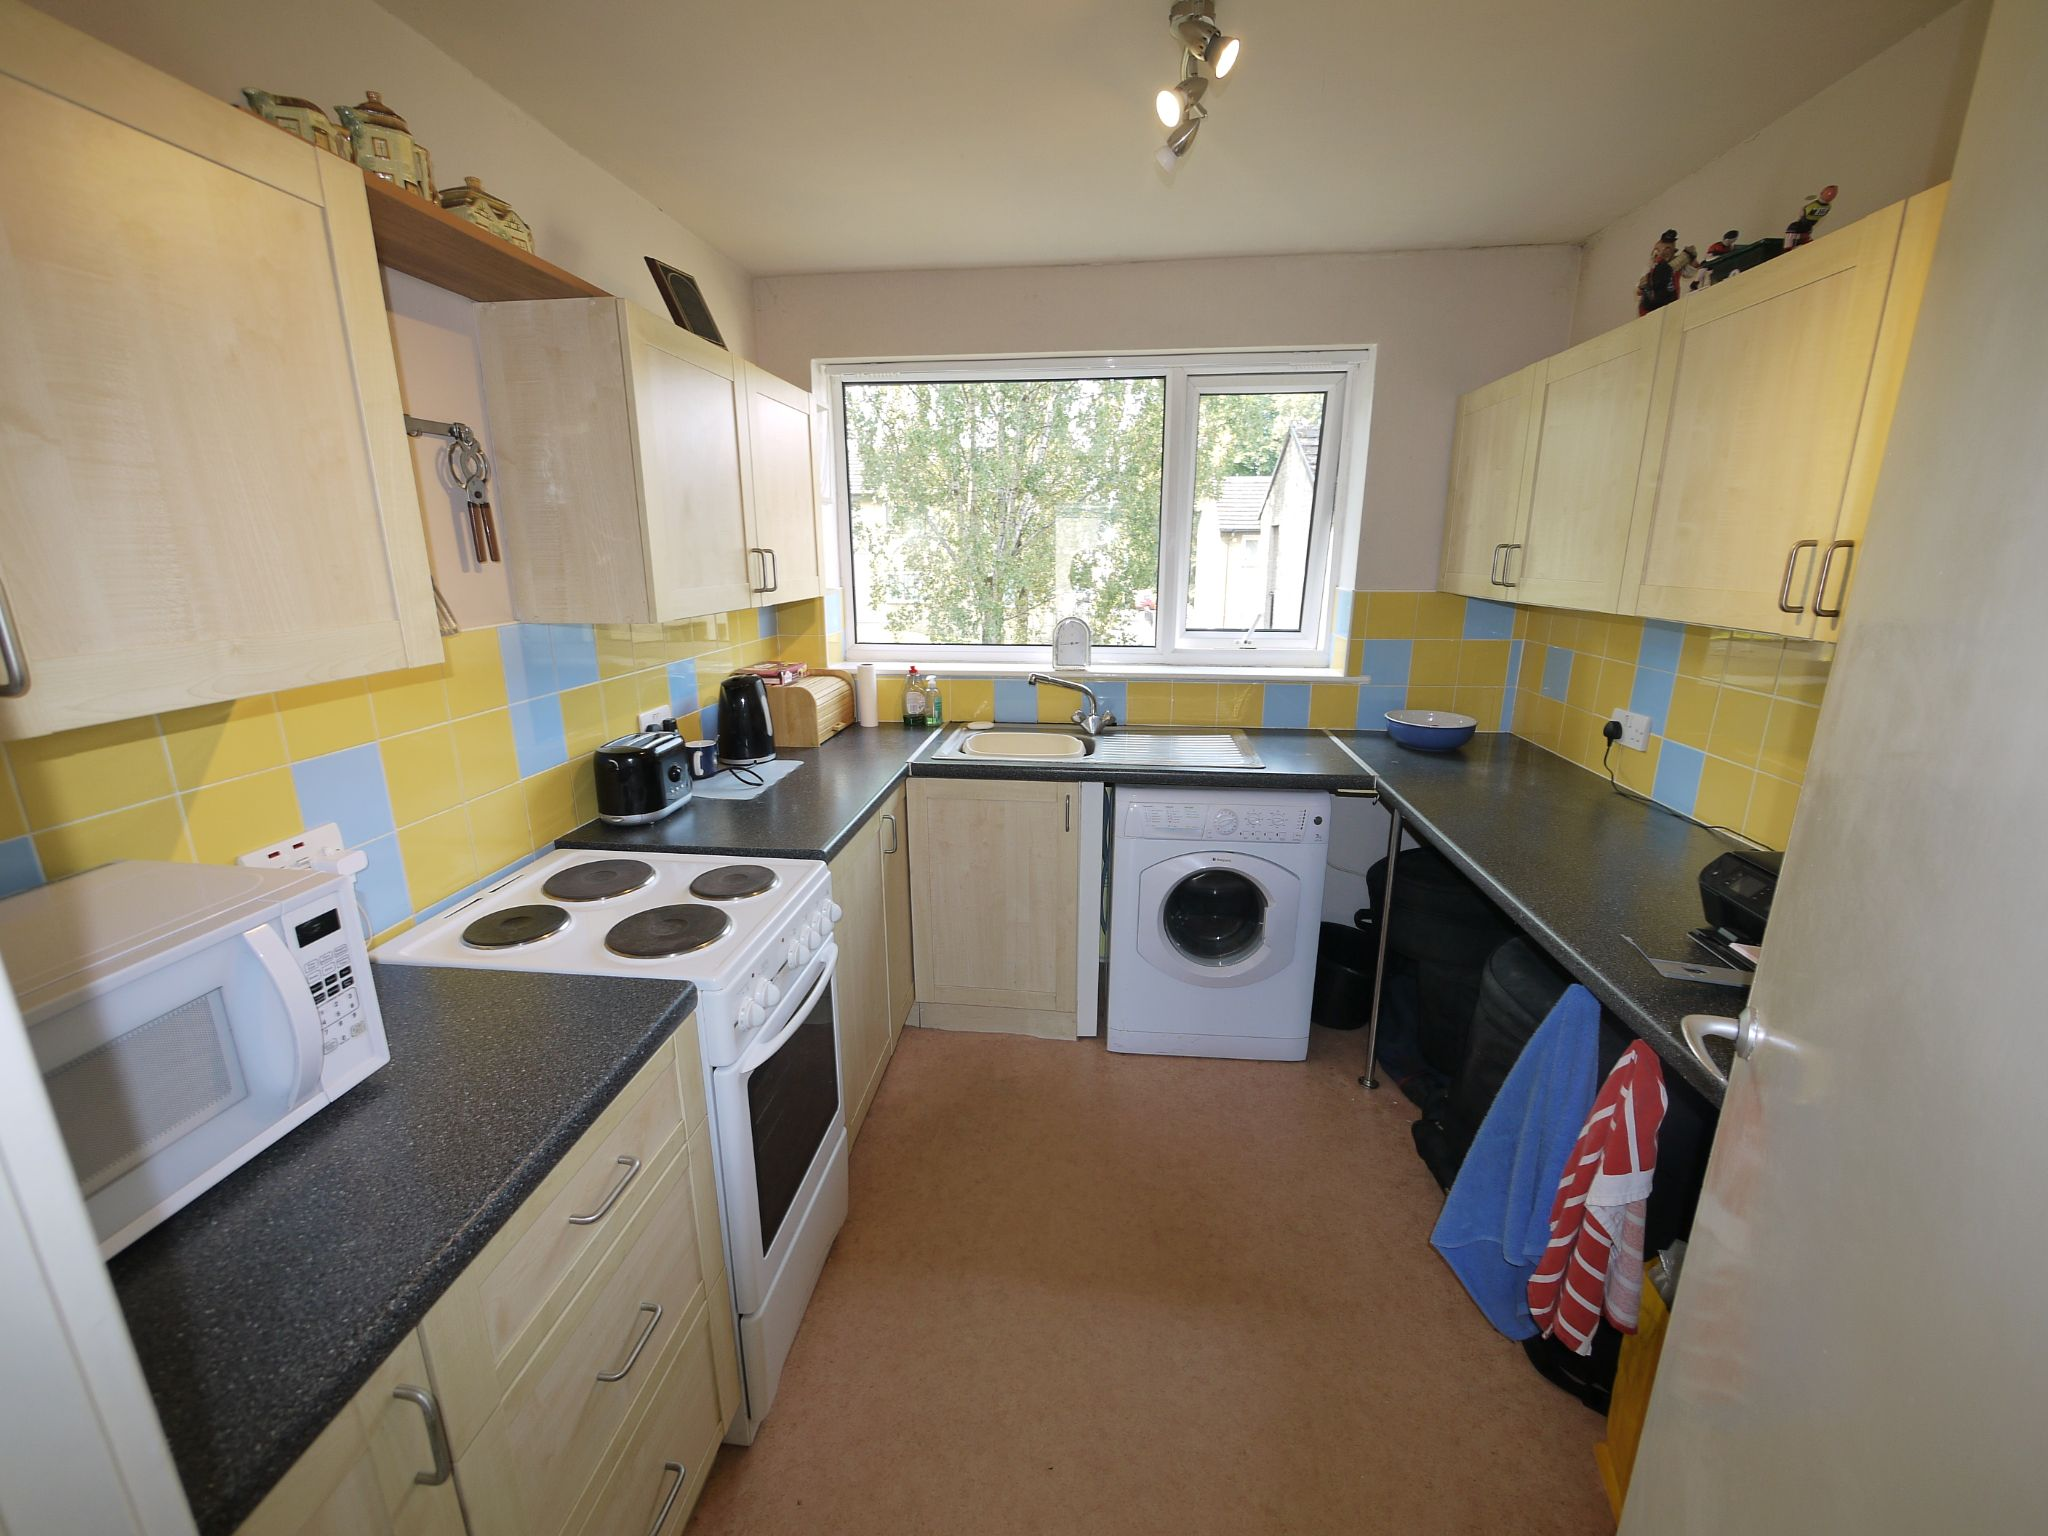 1 bedroom flat flat/apartment SSTC in Brighouse - Kitchen.